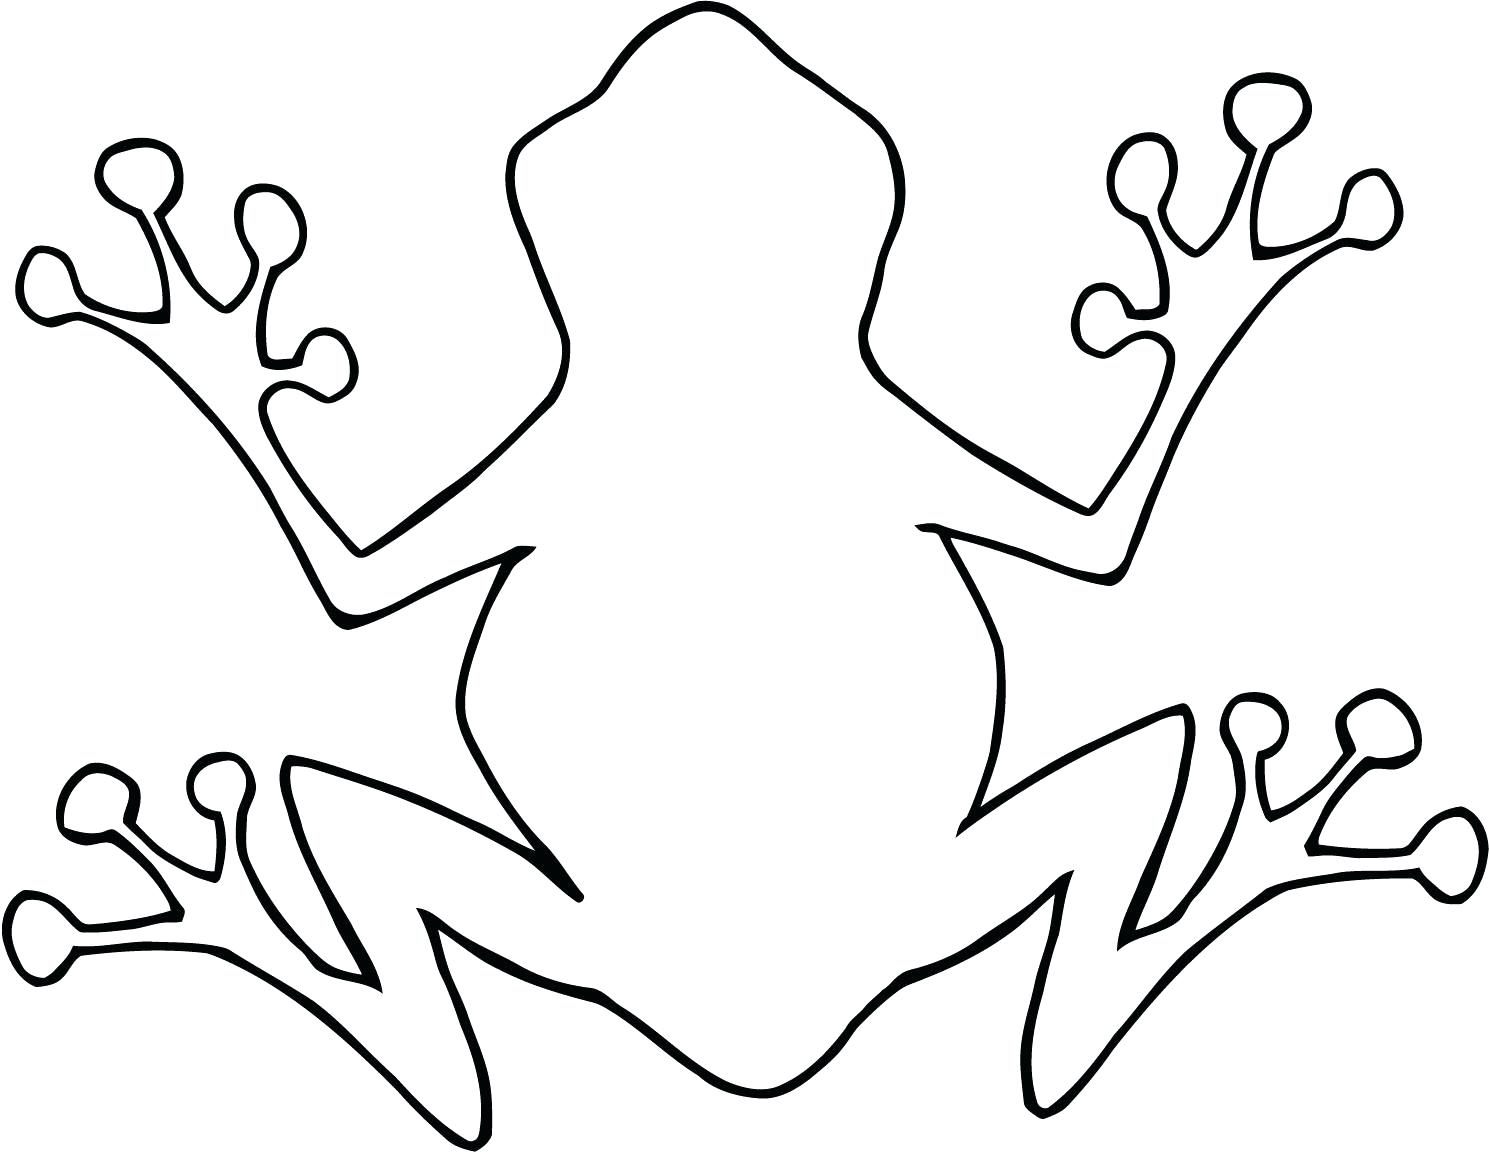 image about Printable Frog referred to as Tree Frog Coloring Internet pages Absolutely free obtain simplest Tree Frog